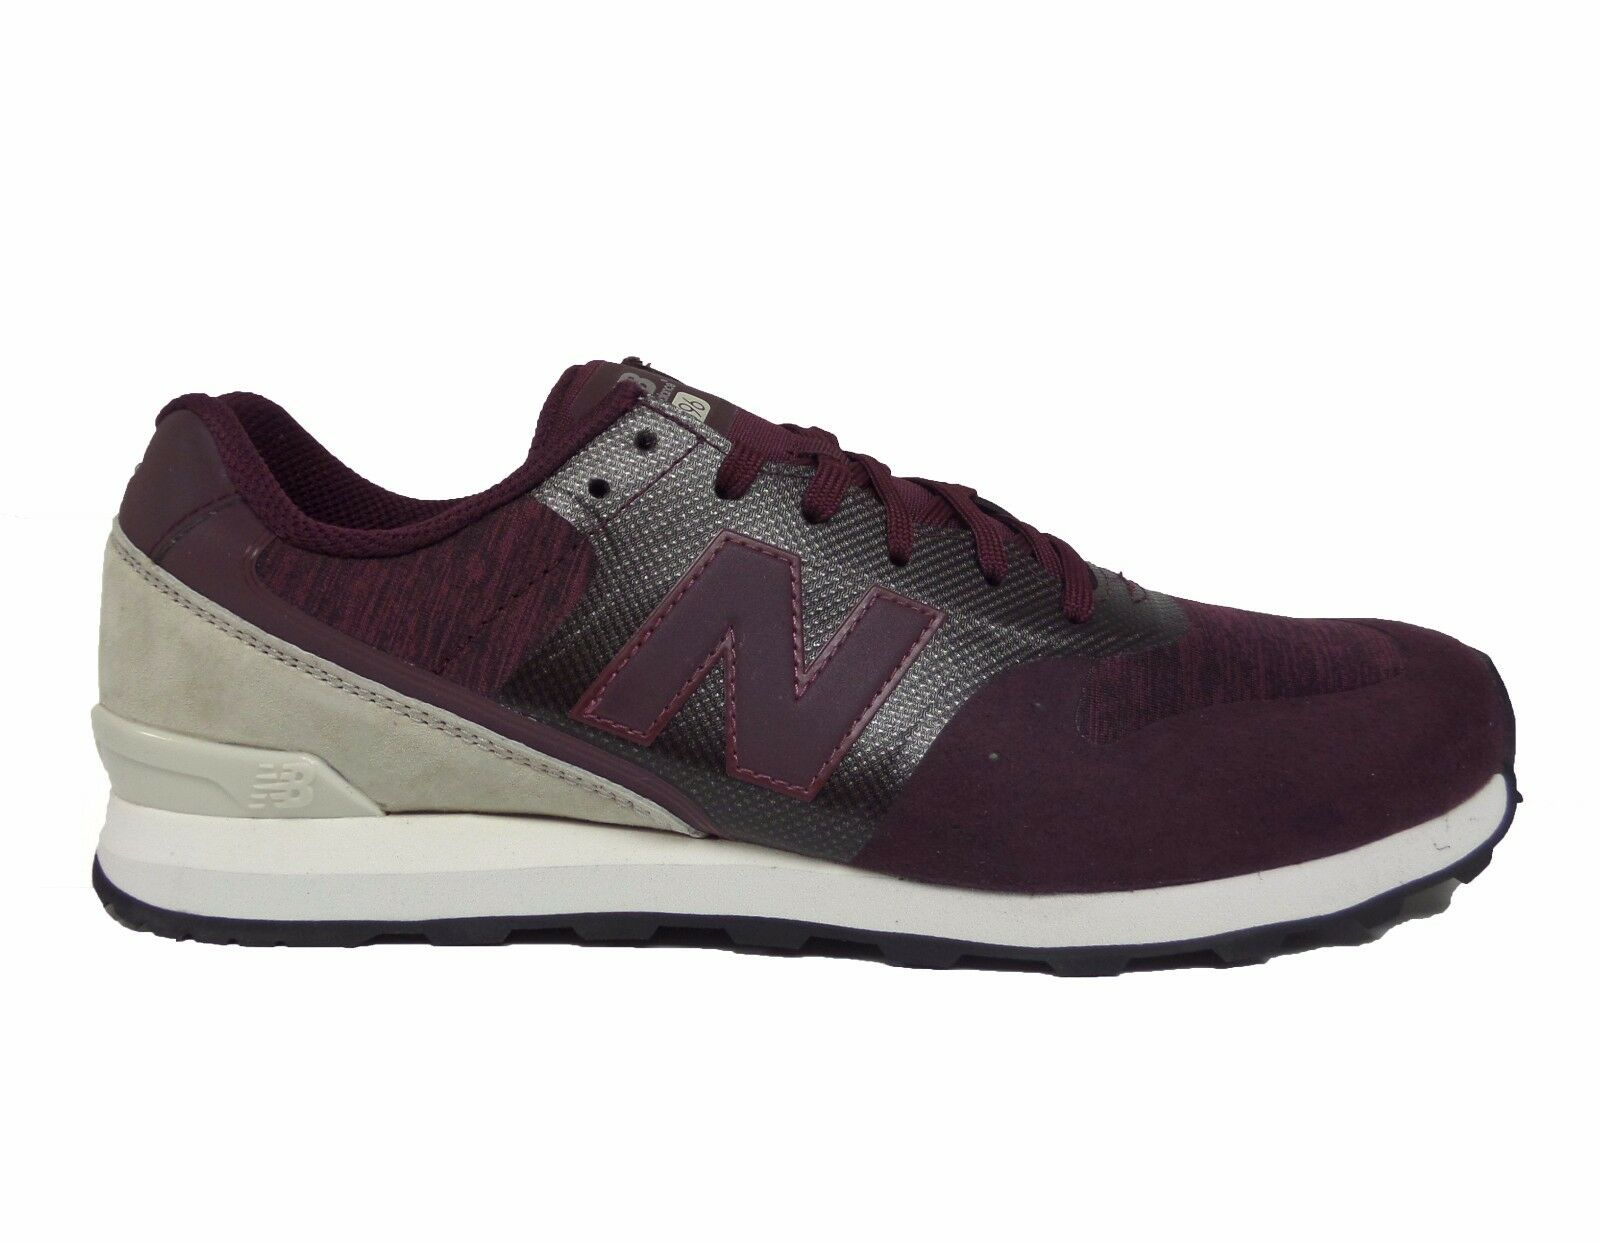 New Balance Women's 696 RE-ENGINEERED CLASSIC Running Shoes Merlot WL696NOD b